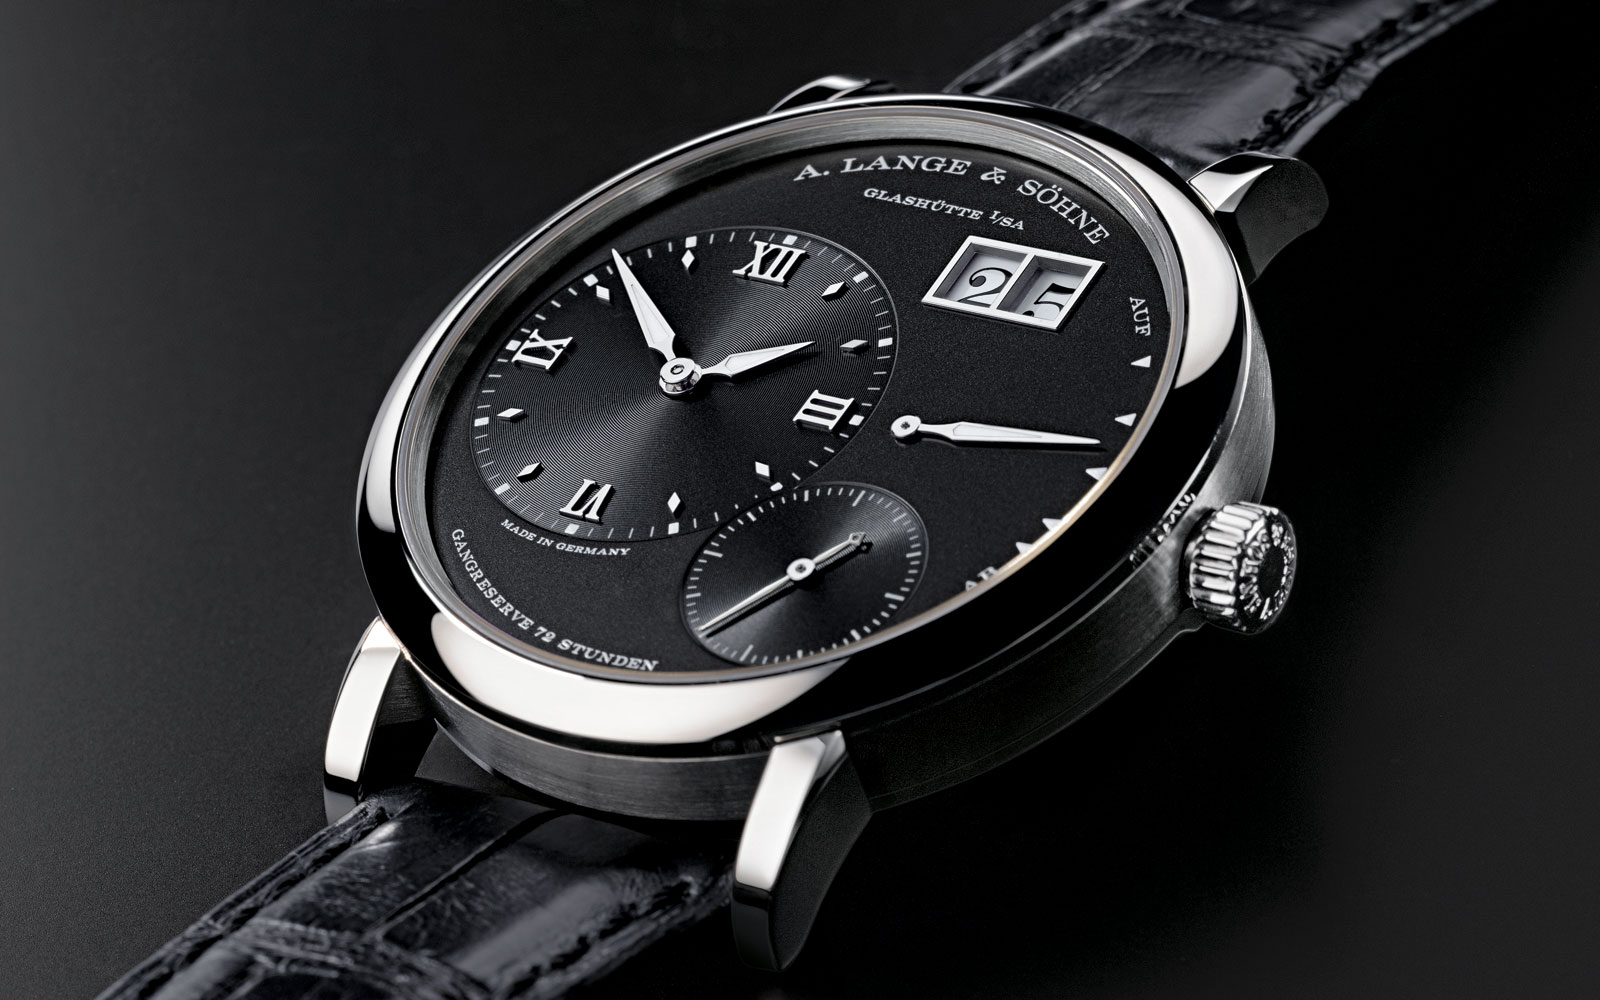 Grand Lange 1 117.028 - feature